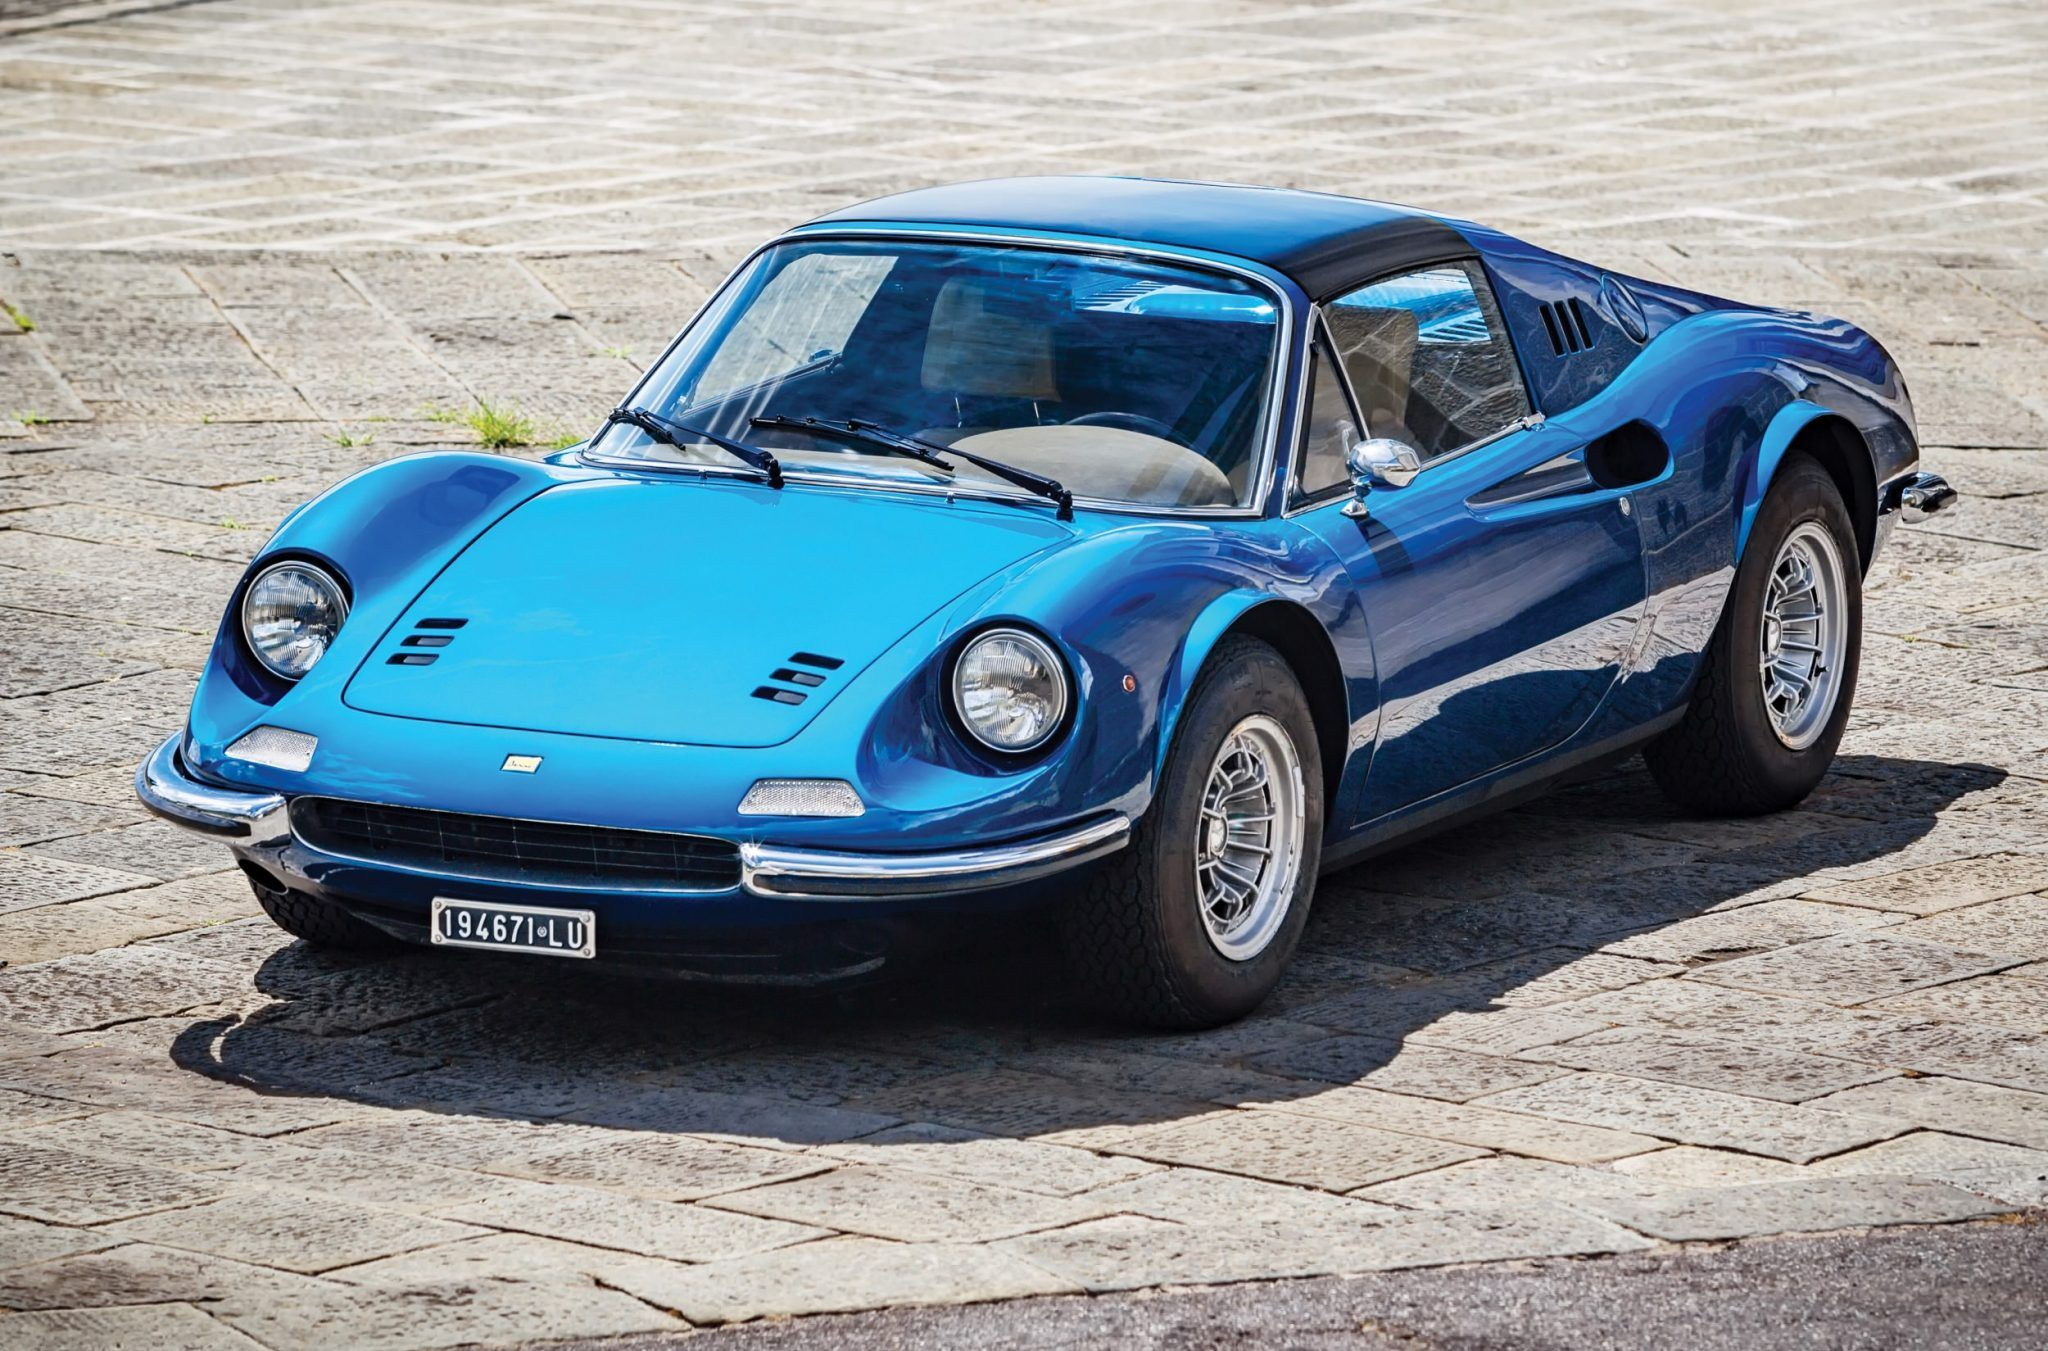 1973 Ferrari Dino 246 Gts With Images Expensive Sports Cars